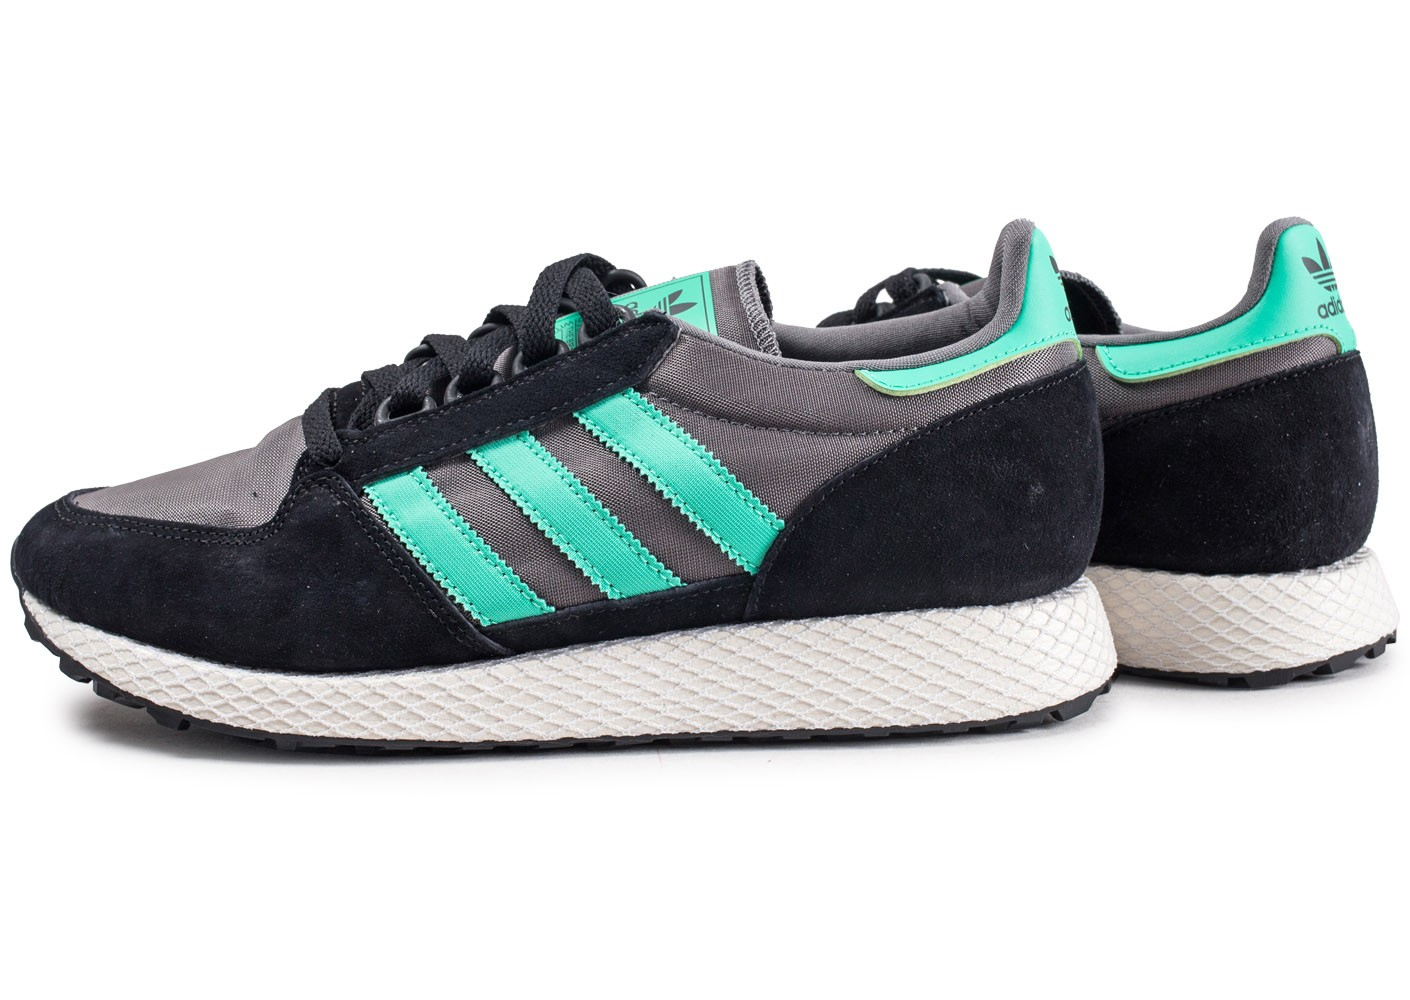 Forest Grove Baskets Homme Adidas Et Chaussures Noire Verte m0nywNv8O